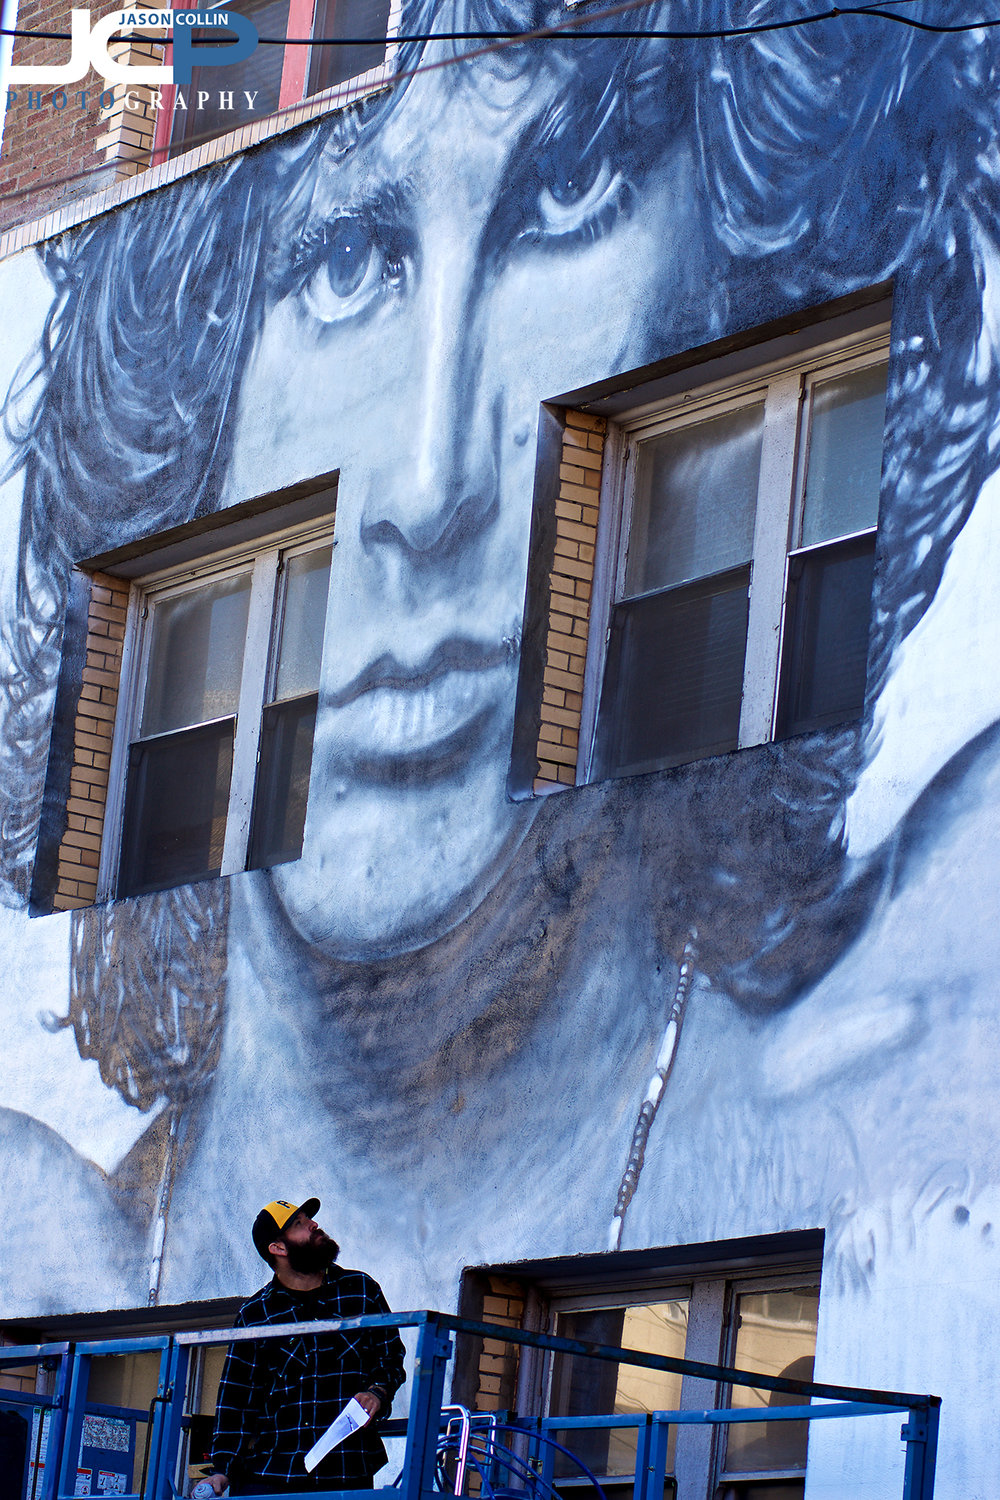 Jim Morrison is well represented in Venice Beach - Nikon D7200 with Nikkor 80-200mm lens